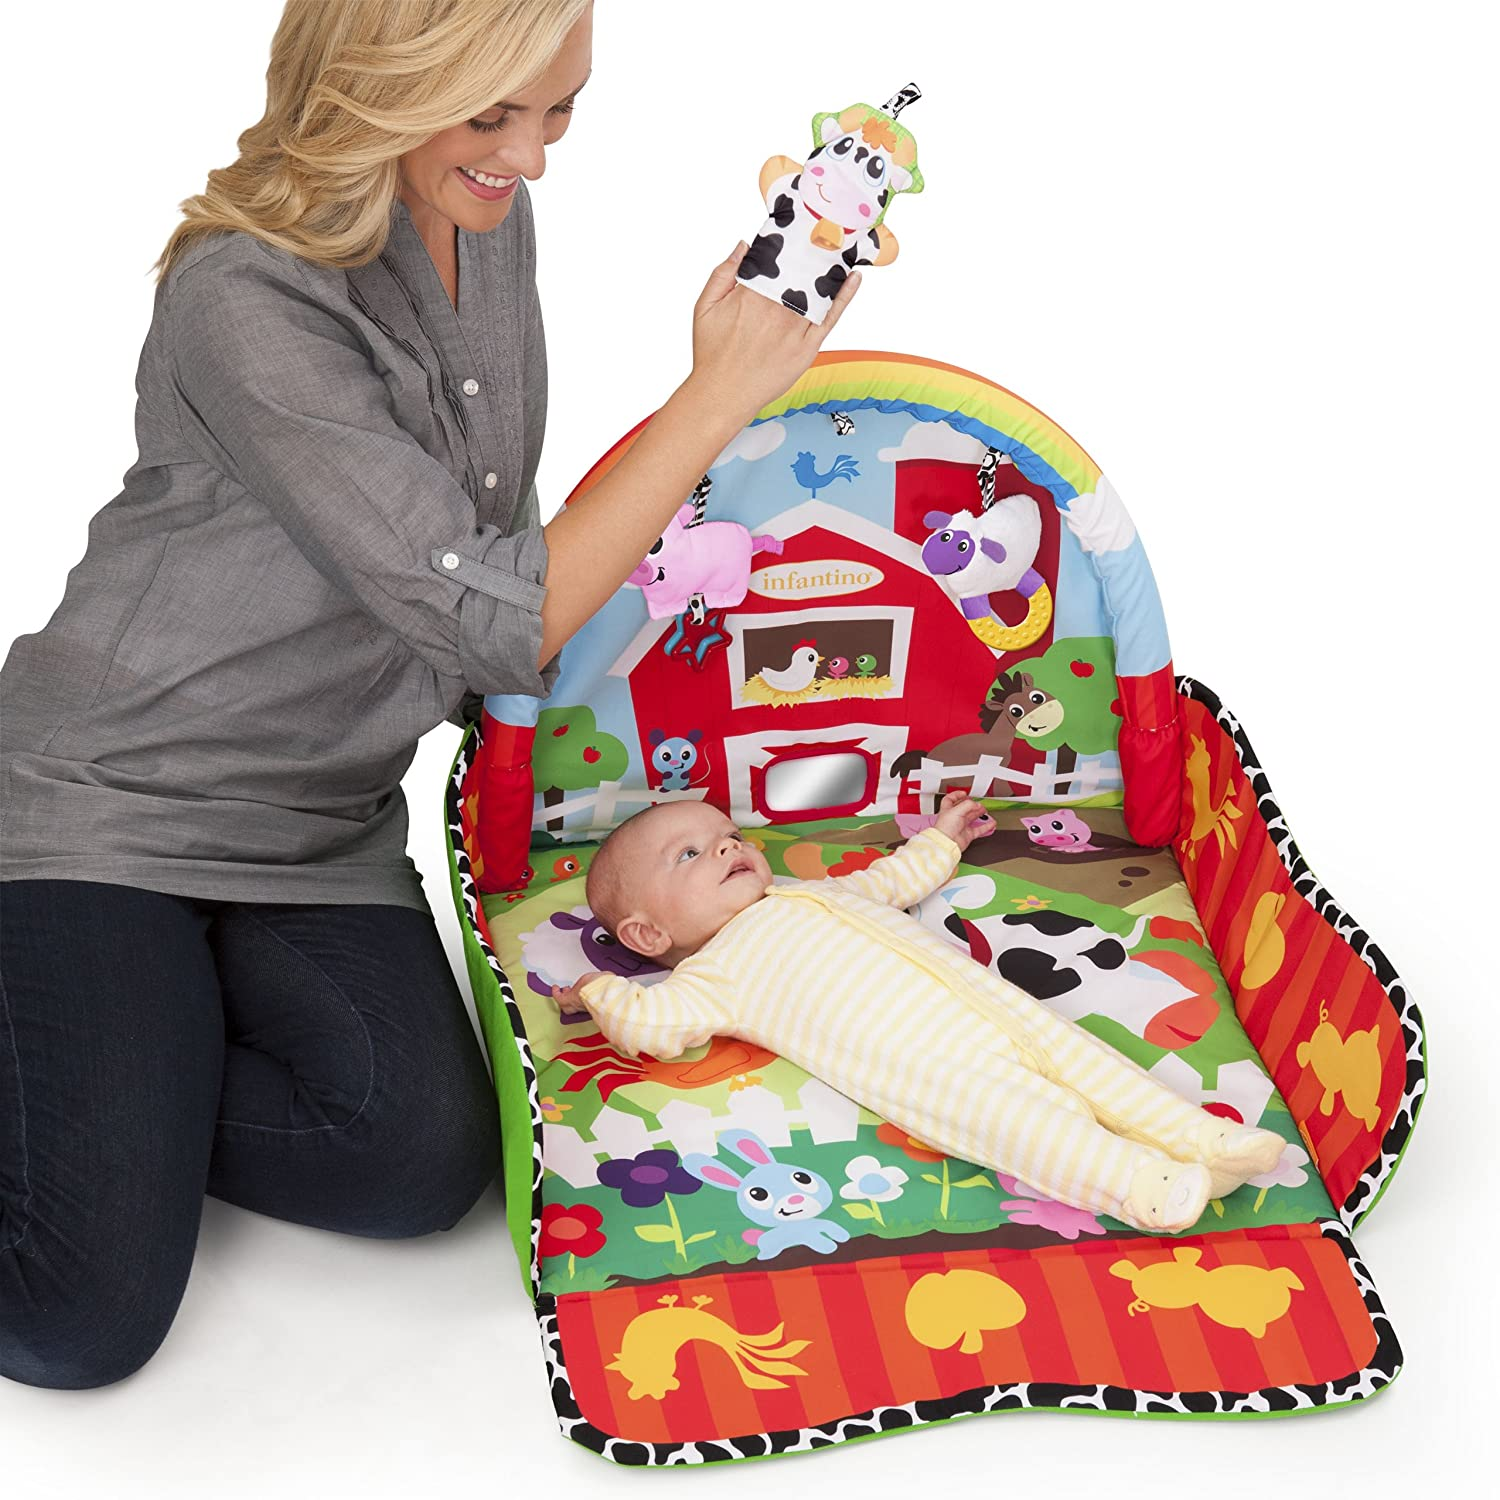 Infantino Puppet Grow with Me Gym